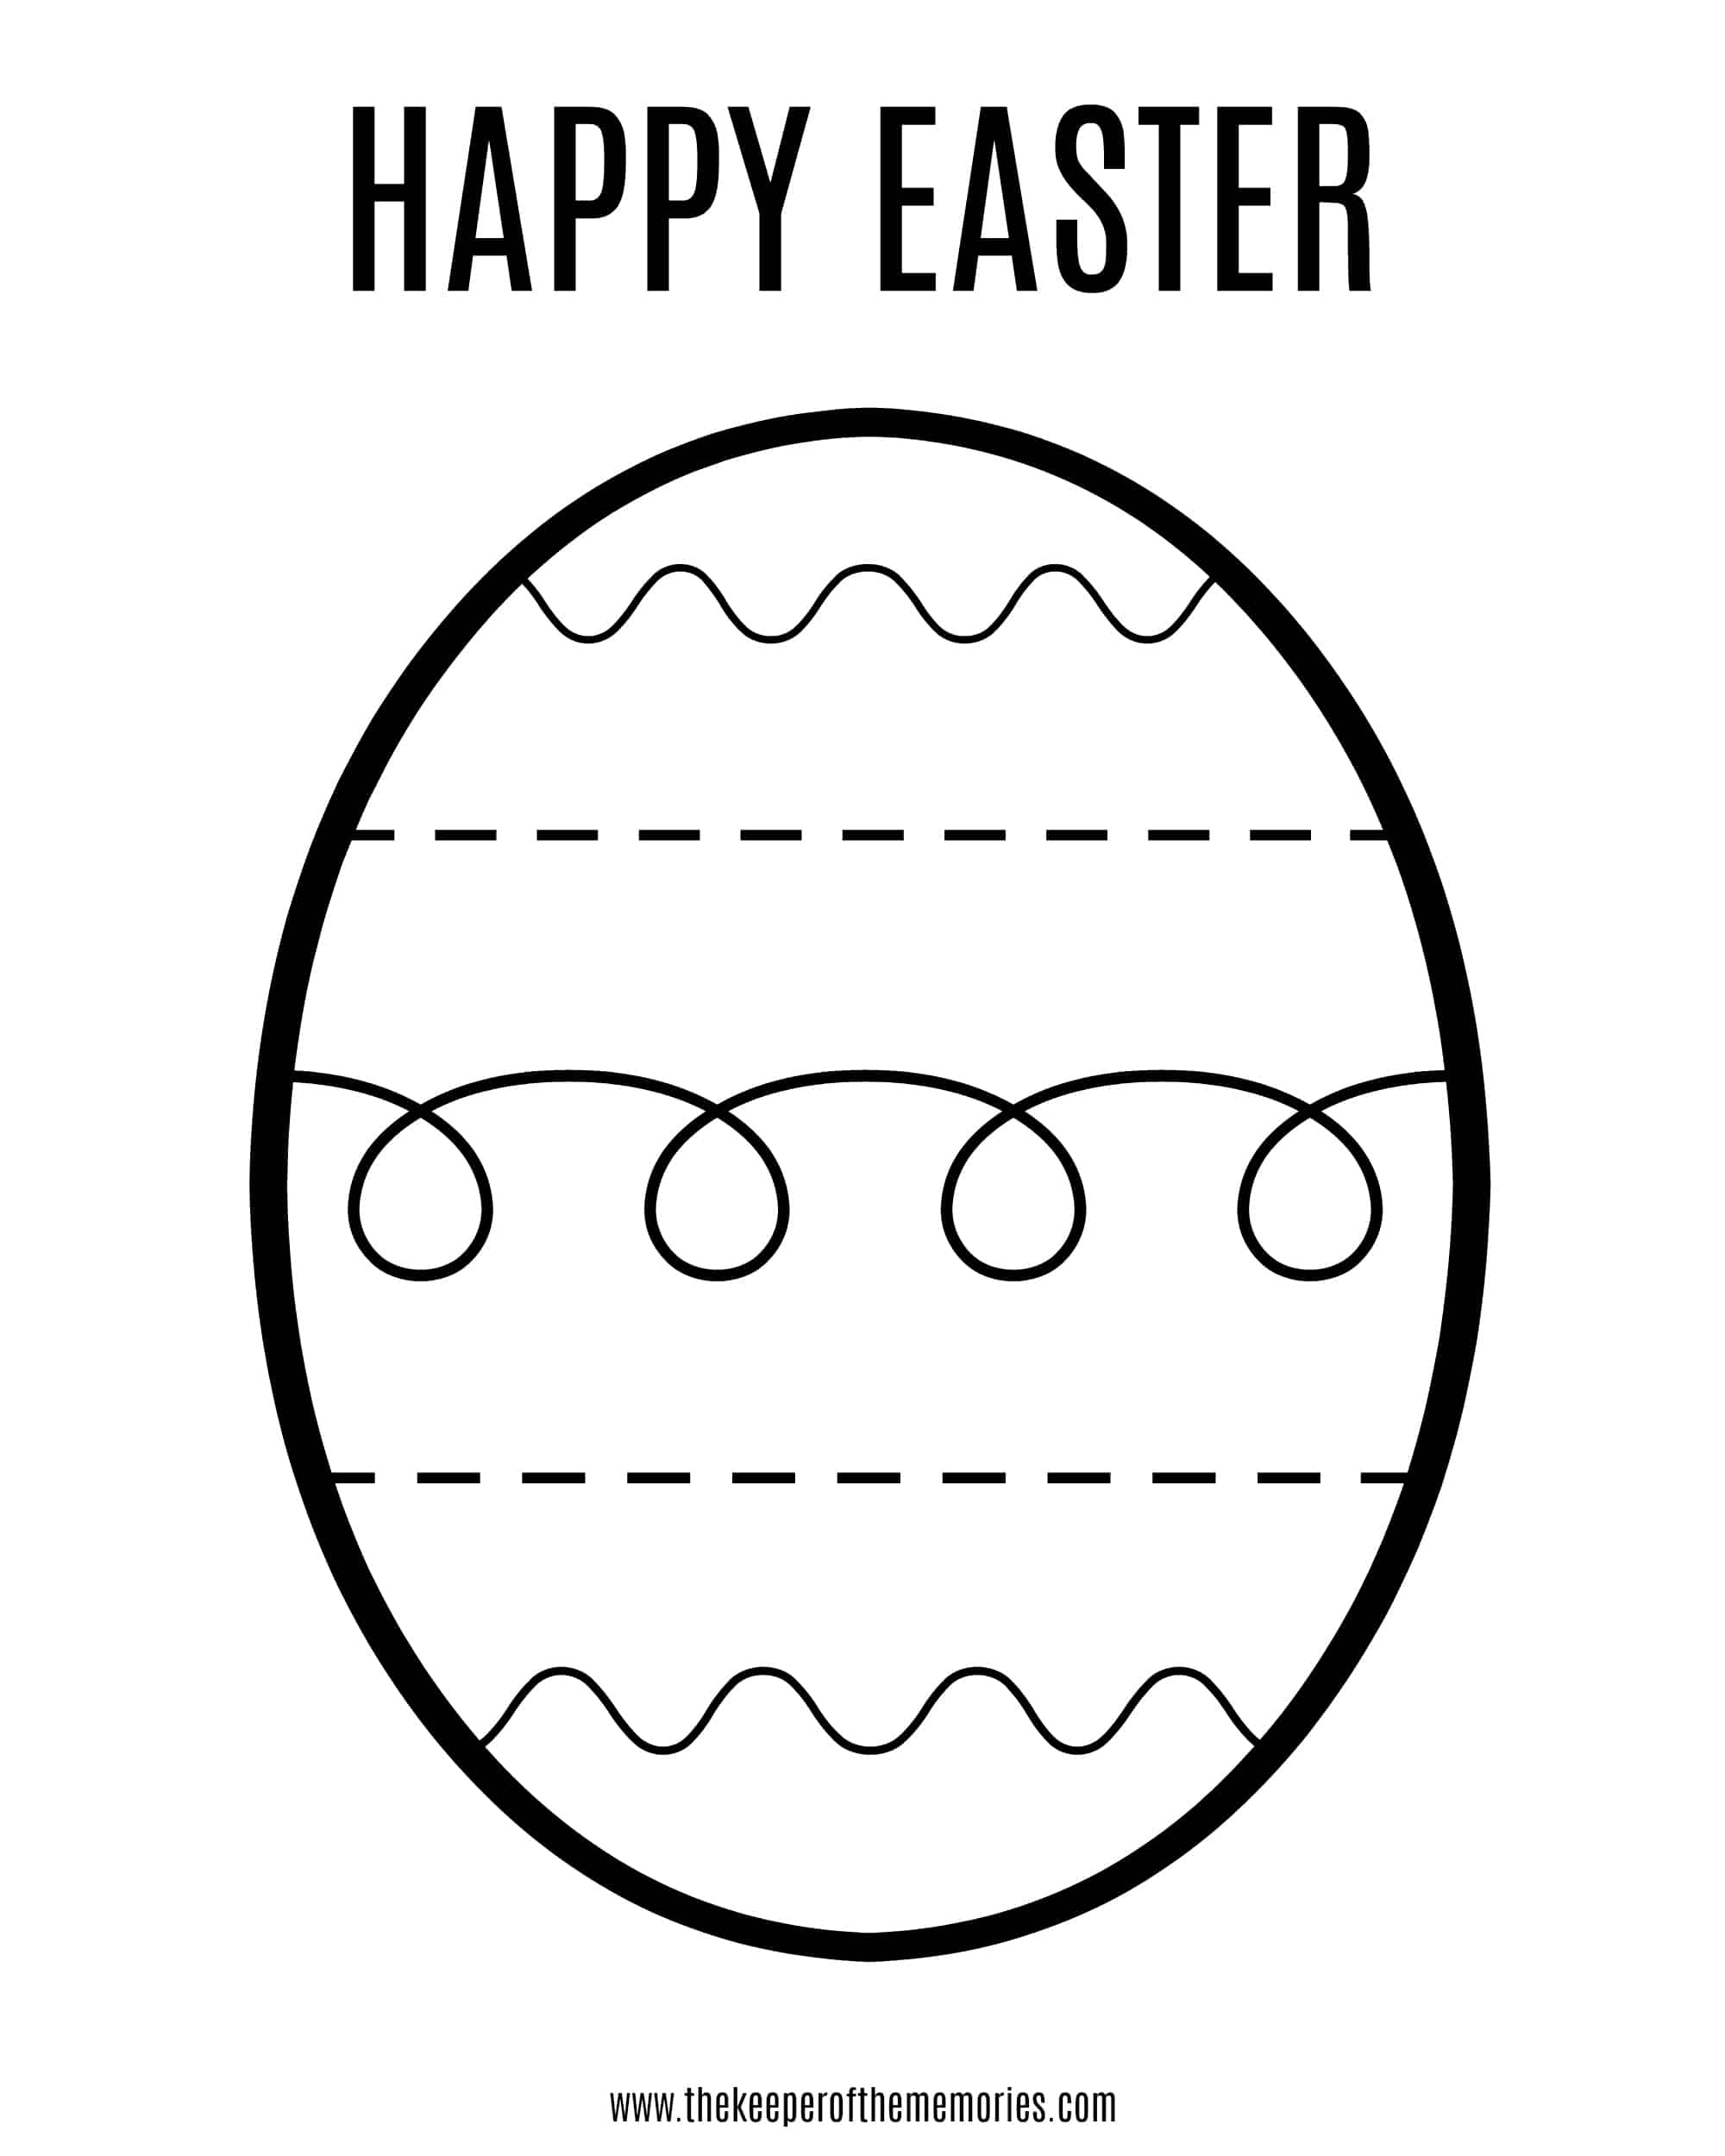 image regarding Easter Printable referred to as Cost-free Printable Easter Coloring Sheet for Minimal Small children - The